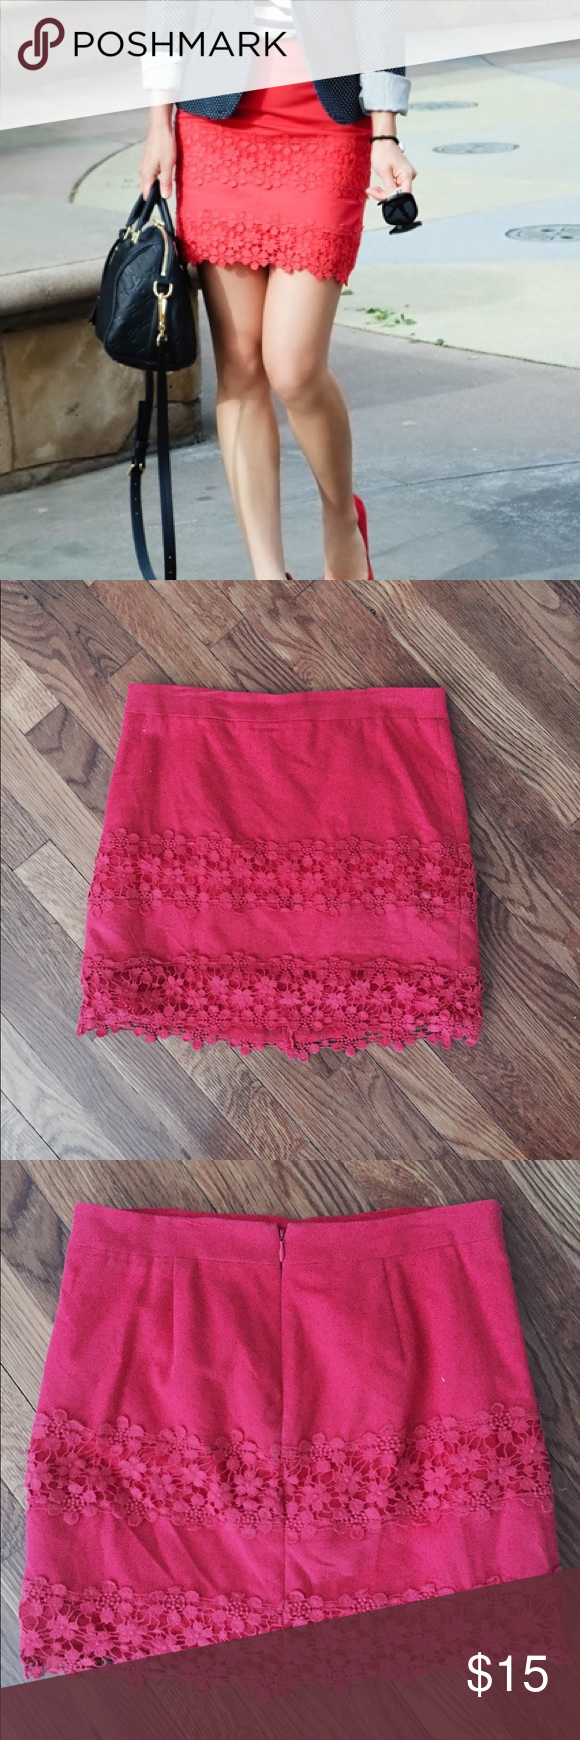 "J. Crew Daisy Lace mini Lace miniskirt in great condition. Reddish/pink color, as shown in first picture. Sits above waist. 16"" long. Typical J. crew 0. J. Crew Skirts Mini"